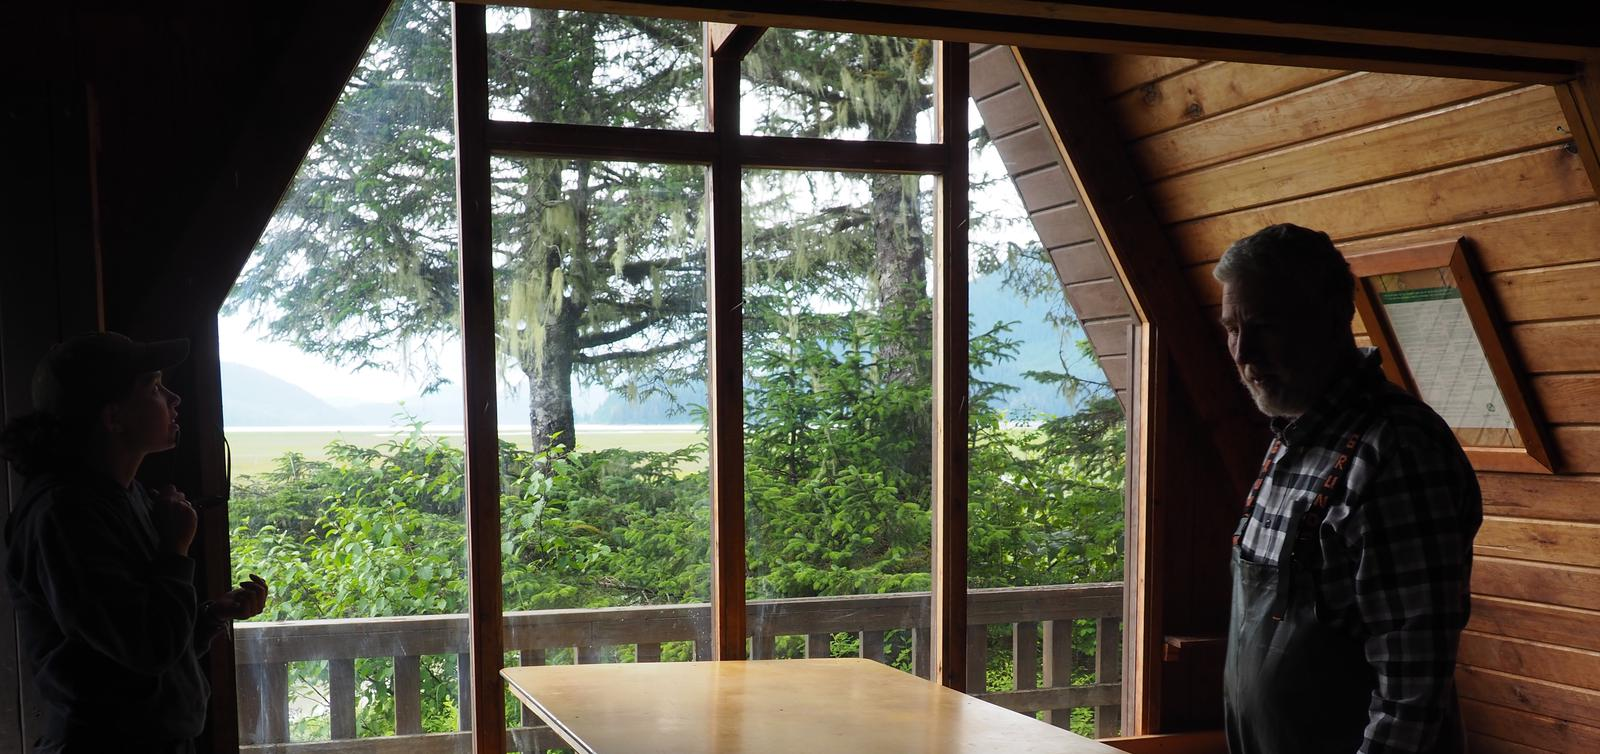 VIEW FROM LITTLE DRY ISLAND CABIN WINDOW